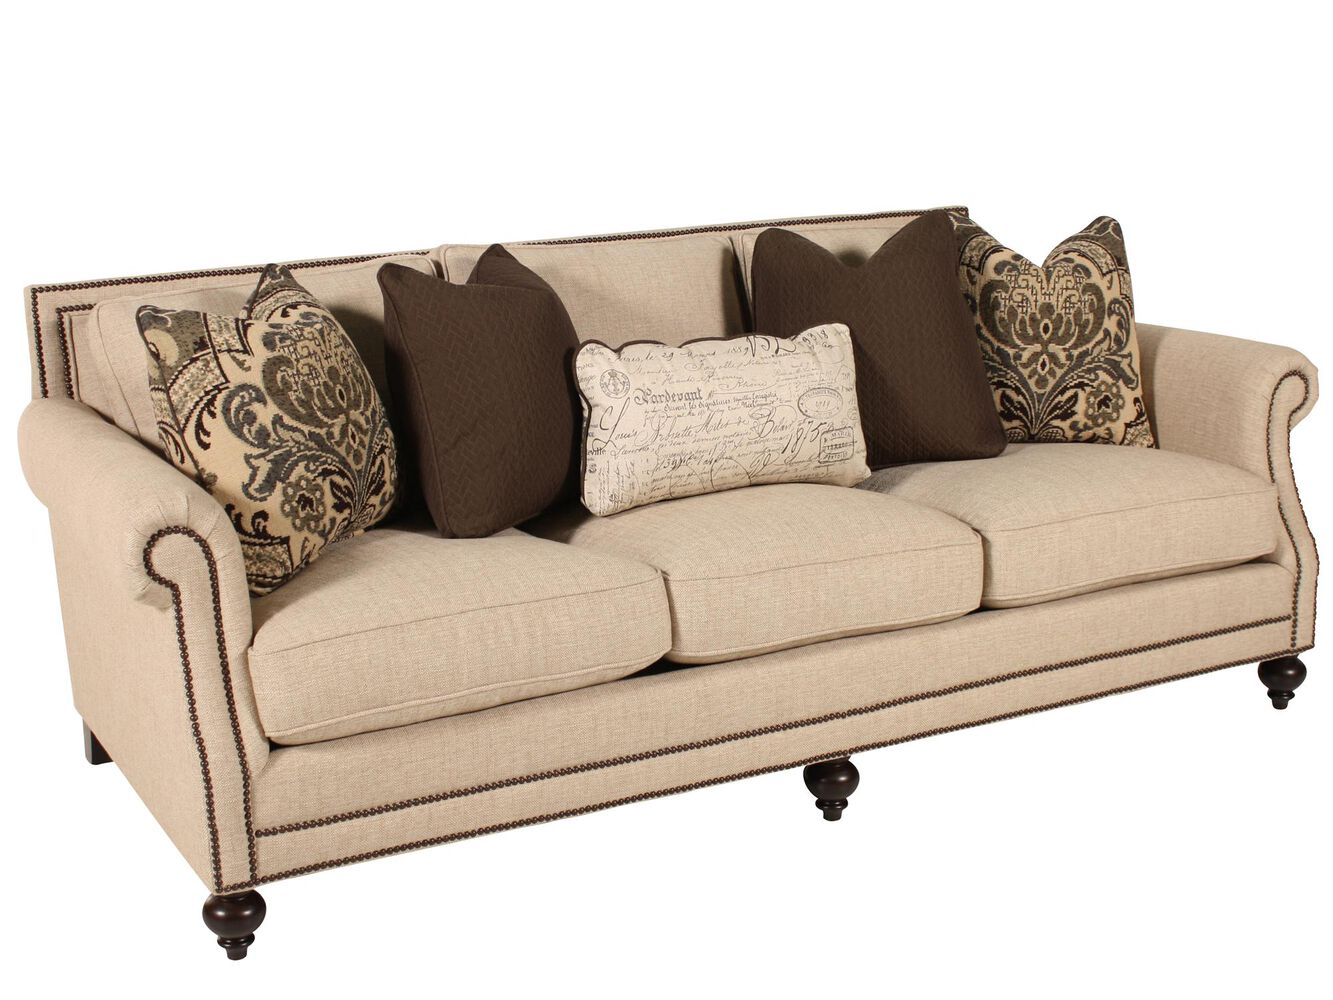 High profile nailhead accented 92 5 sofa in cream mathis brothers furniture Bernhardt living room furniture